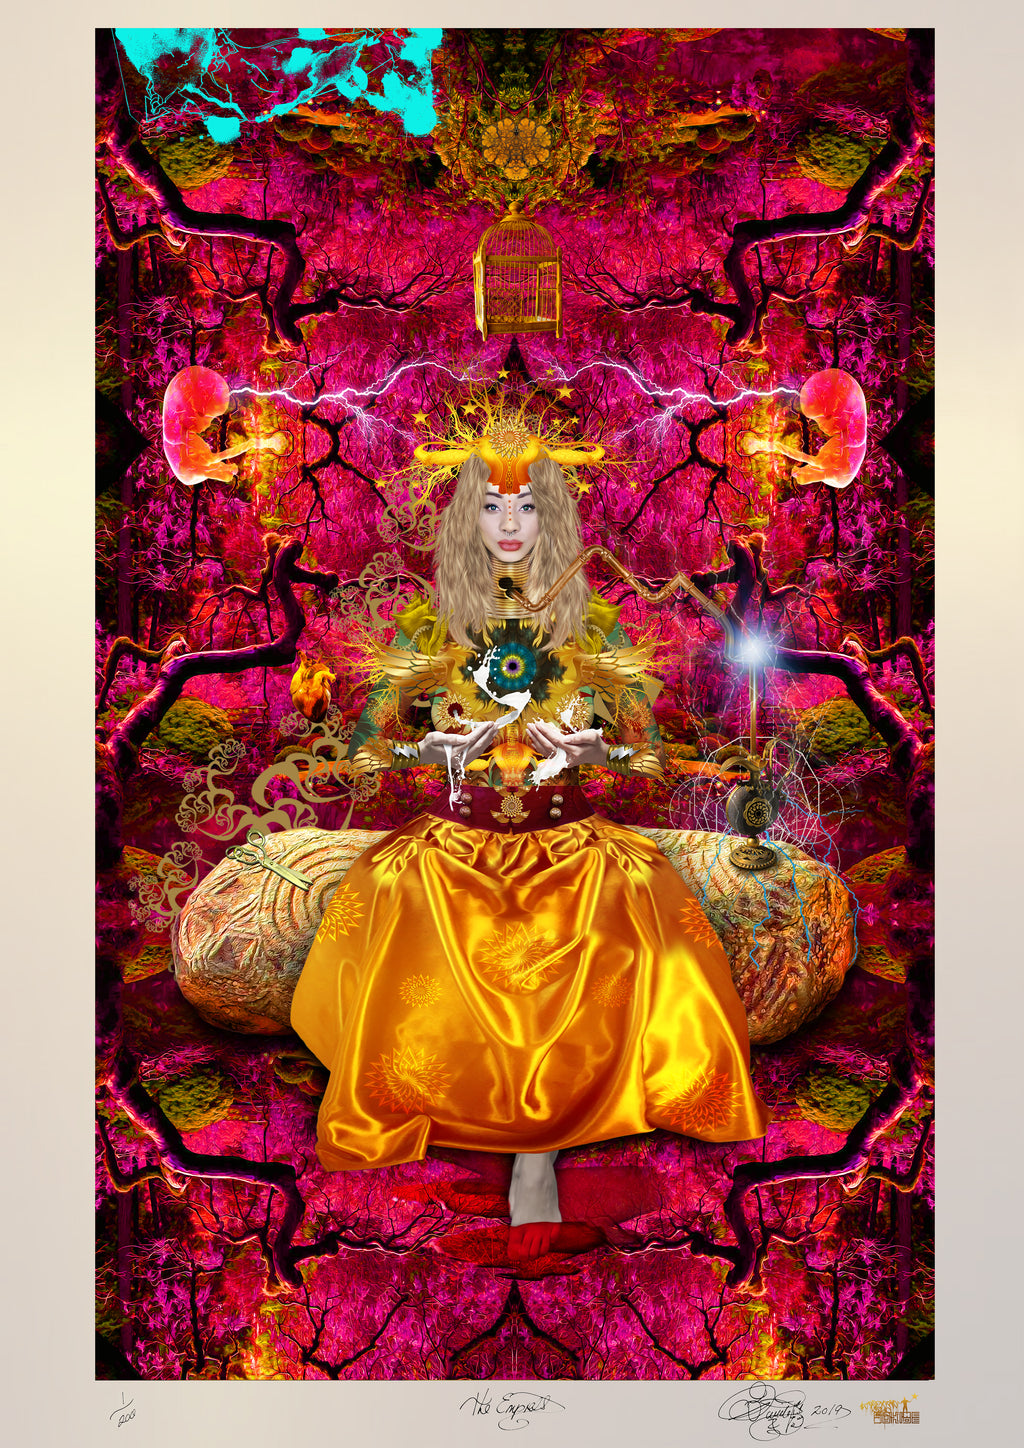 THE EMPRESS Limited Edition Museum Quality Print (Spacial Metallic)